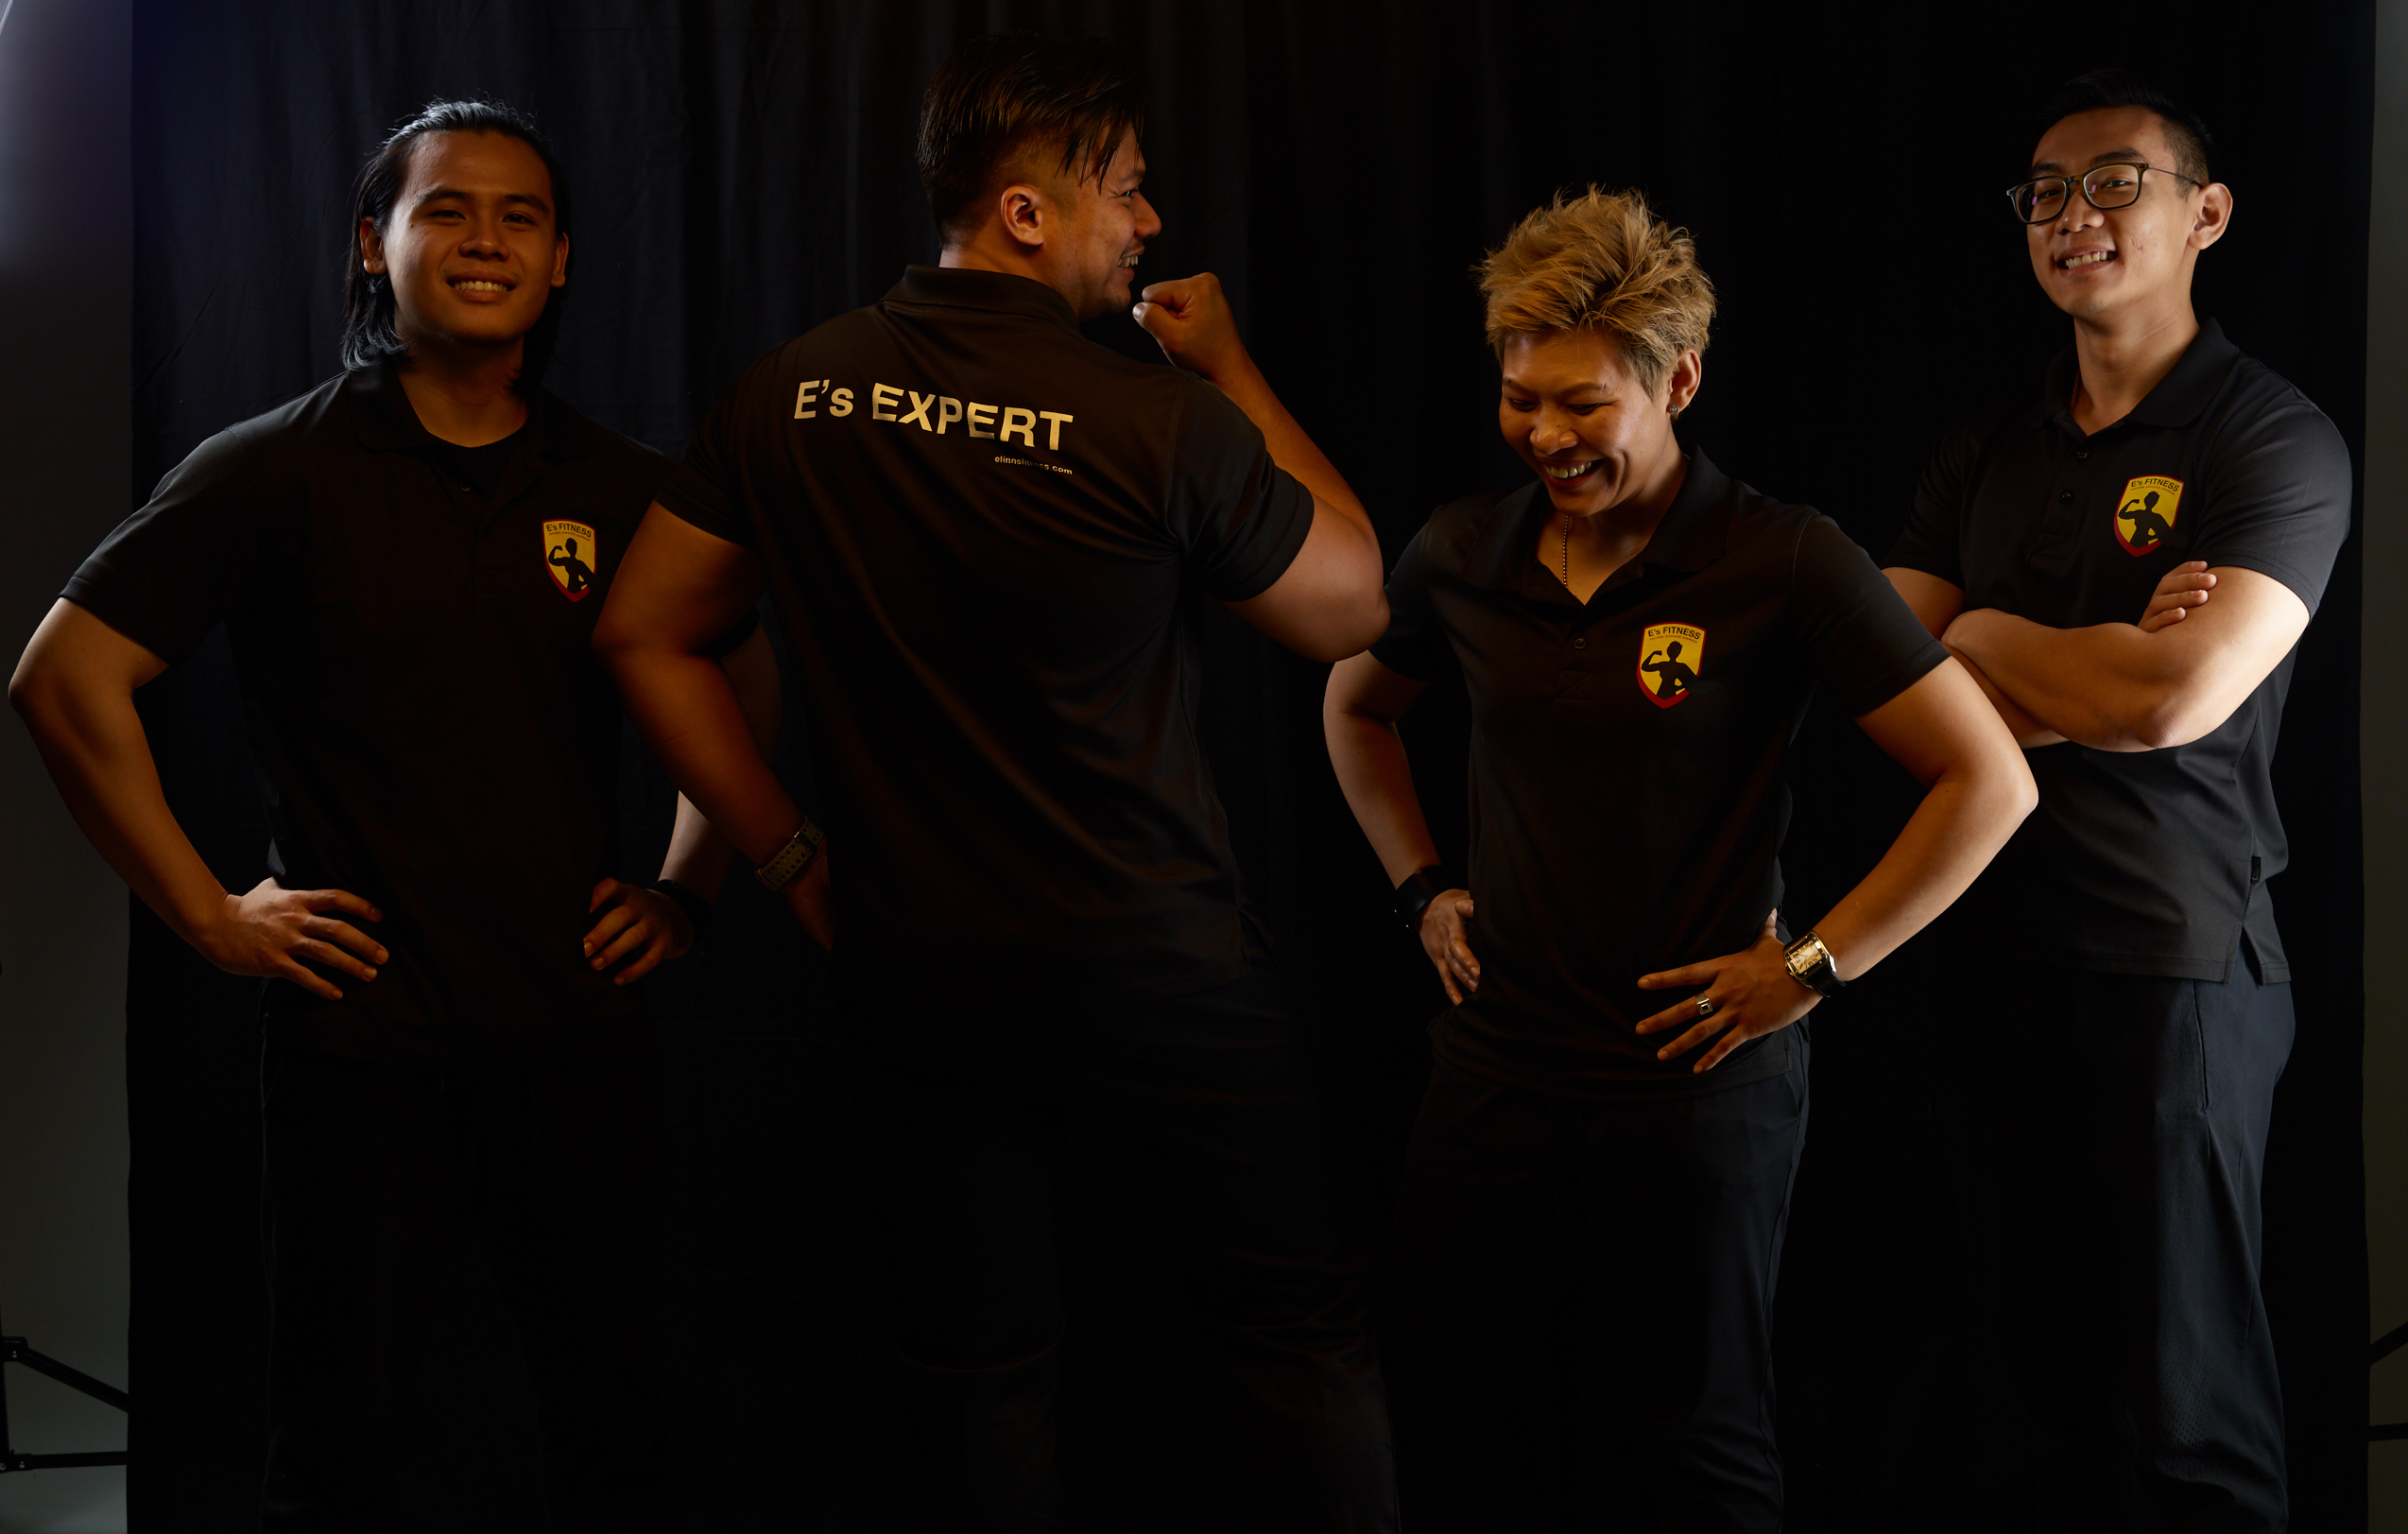 be8d27664 E s FITNESS is an award-winning gym (Best Specialised Gym in Asia 2018